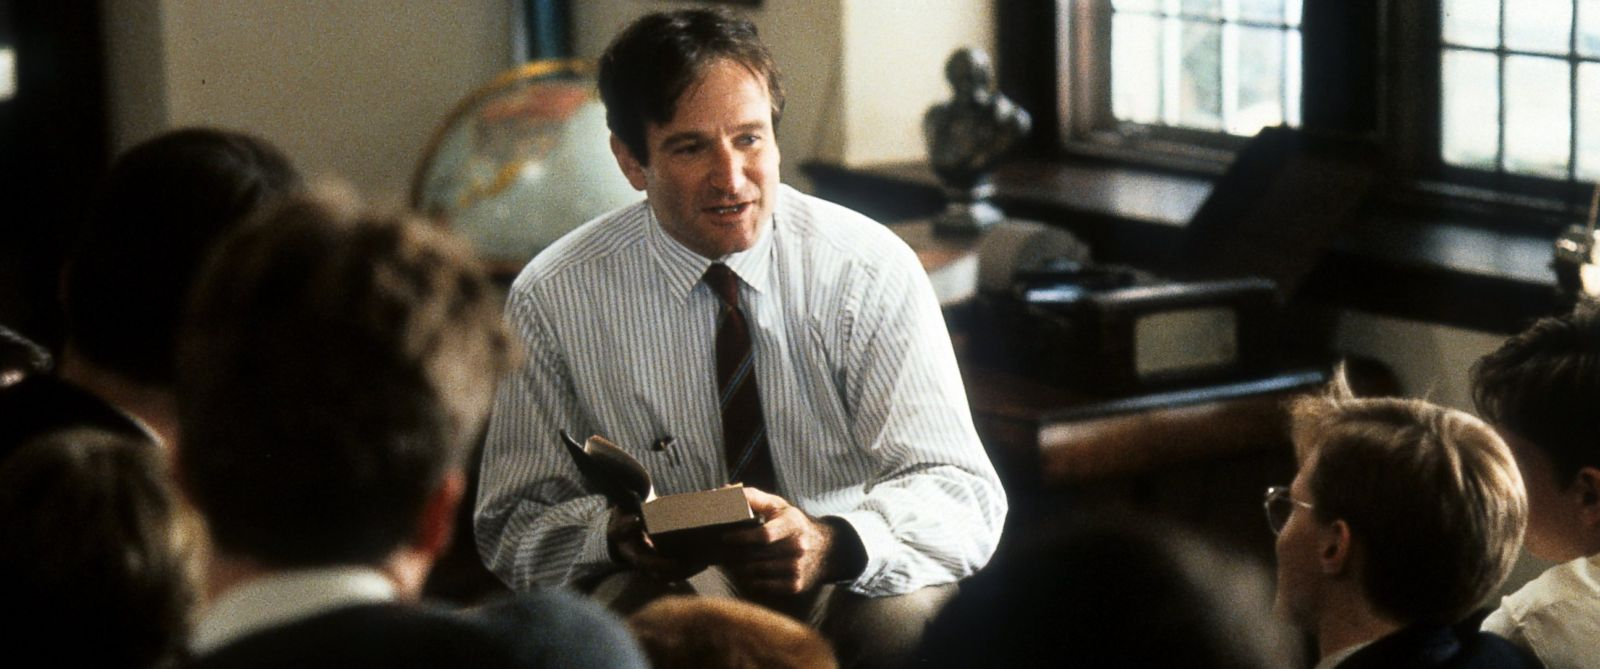 "PHOTO: Robin Williams teaching a class in a scene from the film ""Dead Poets Society,"" 1989."